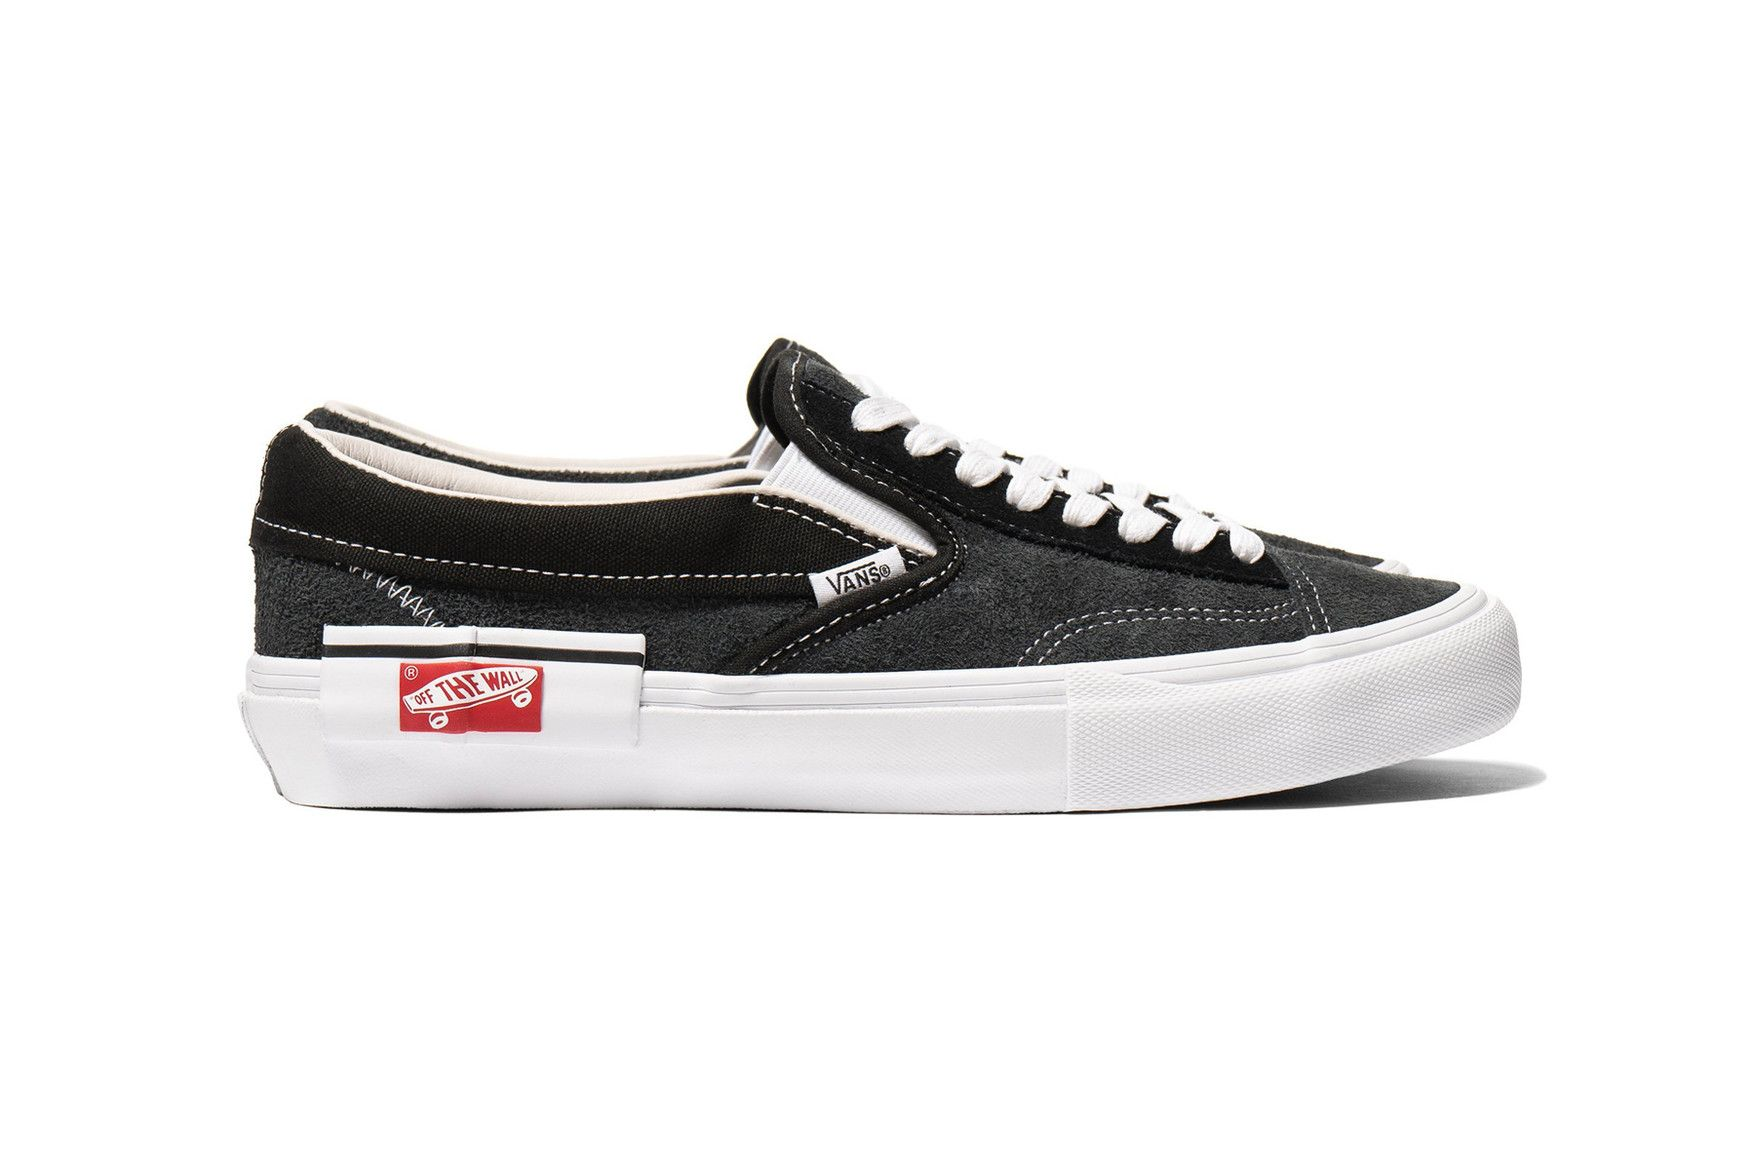 vans off the wall shoes indonesia